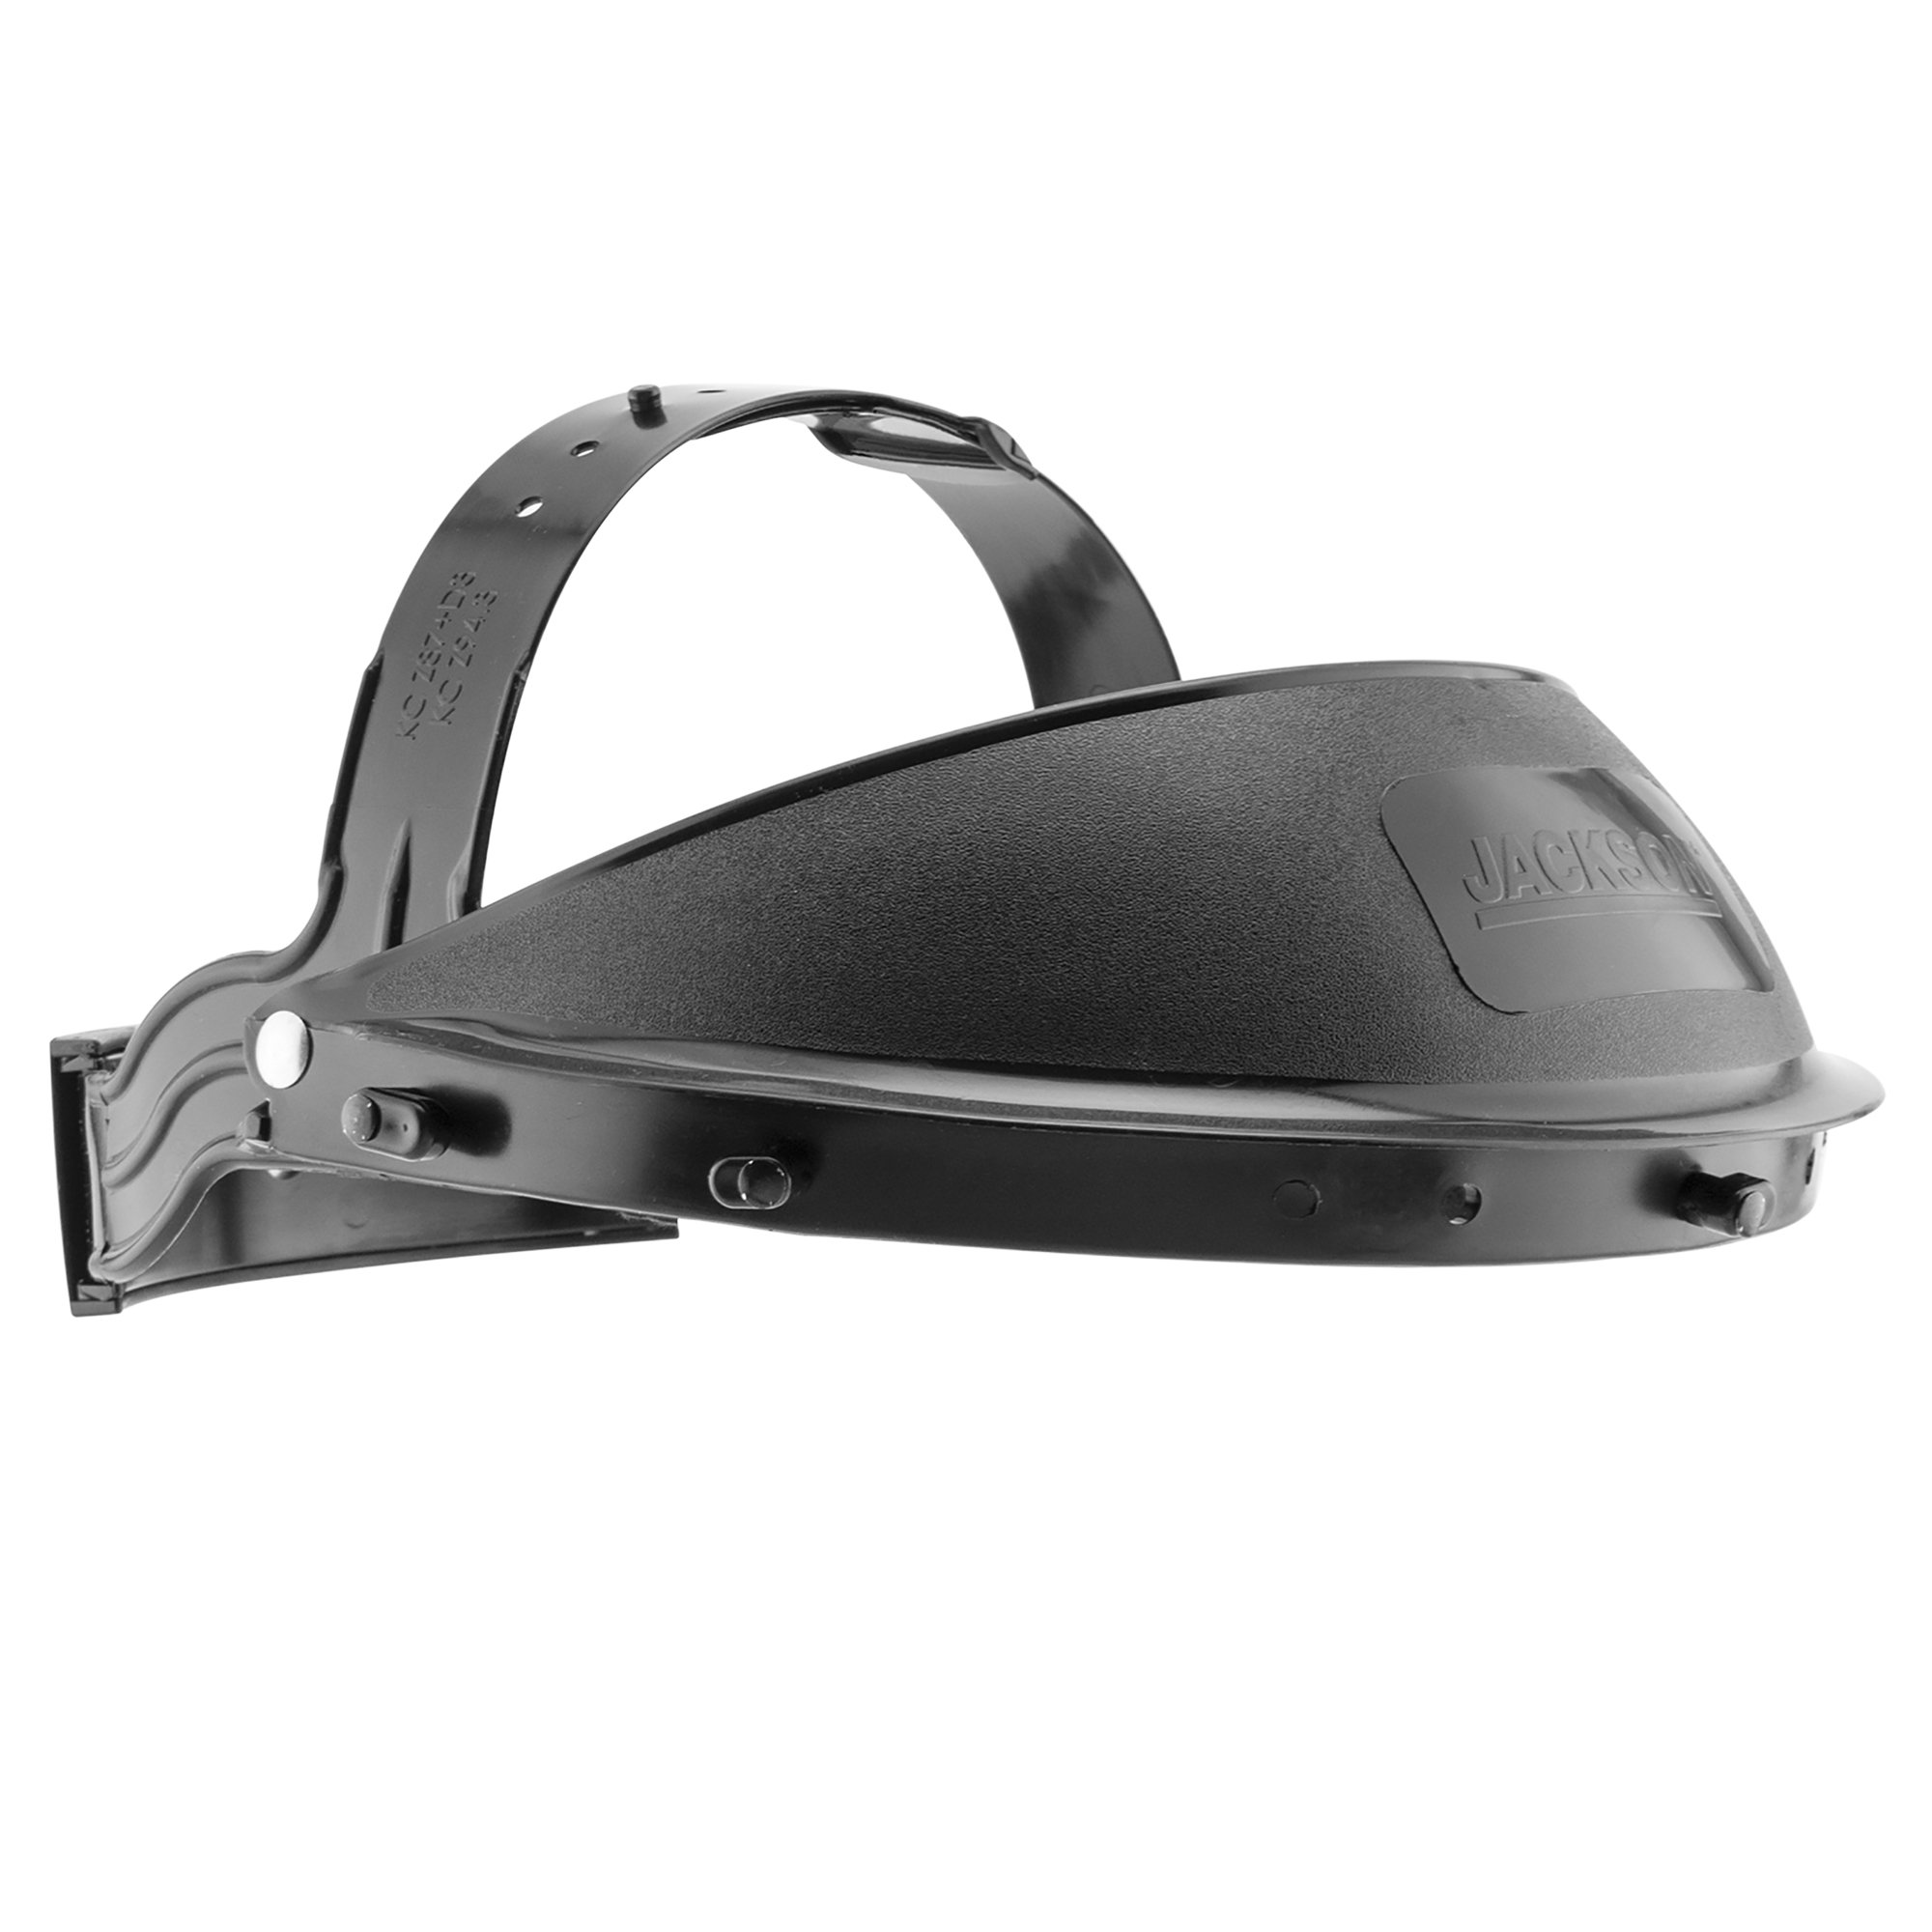 Jackson Safety Headgear KDG10 K-Facesaver (14381), Ratchet Suspension, for 12'' or 15.5'' Face Shields, Cushioned Sweatband, Black, 12 Units / Case by Jackson Safety